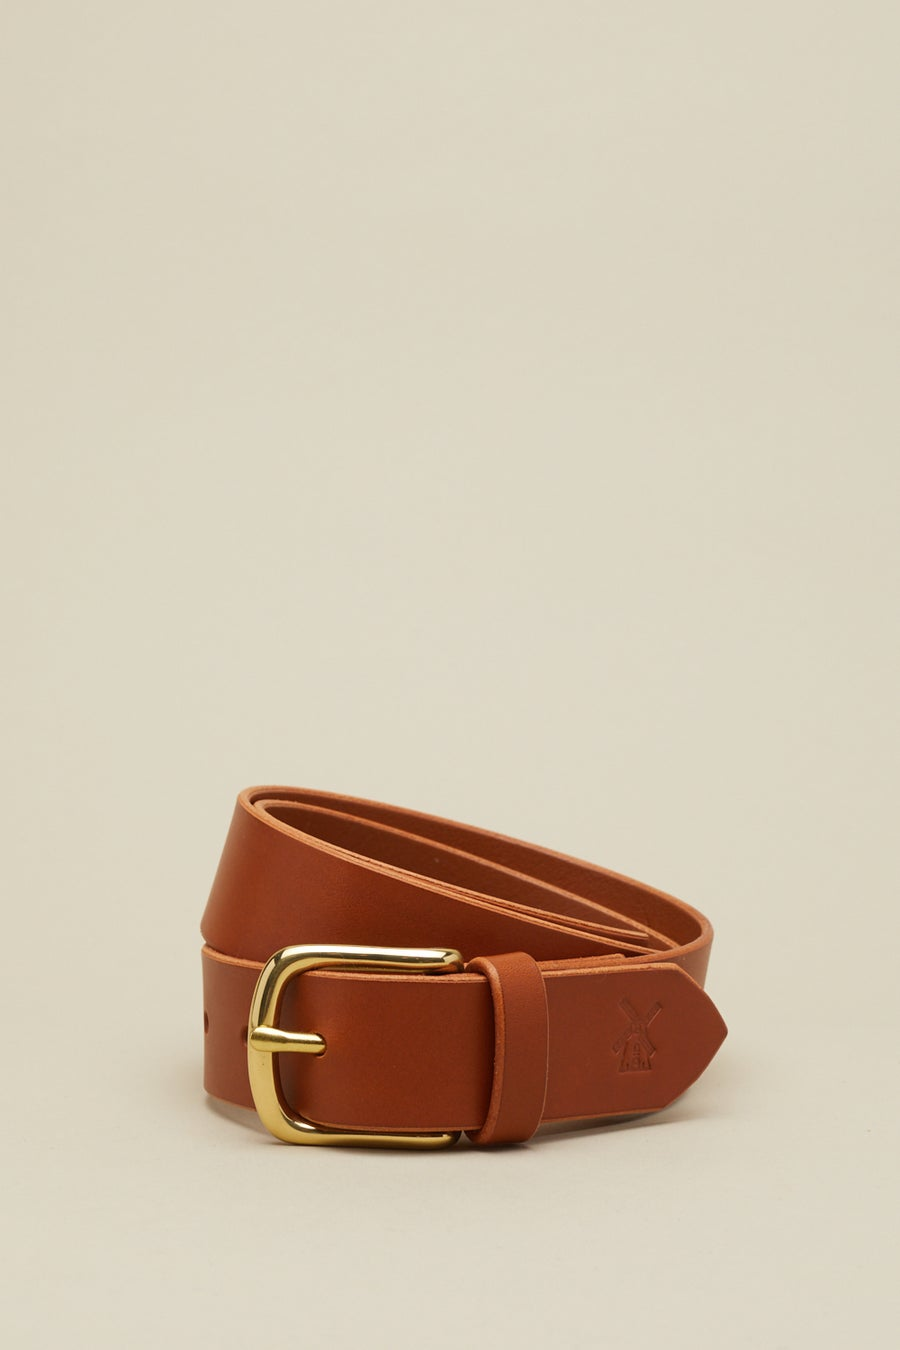 Image of Classic Buckle in Tan